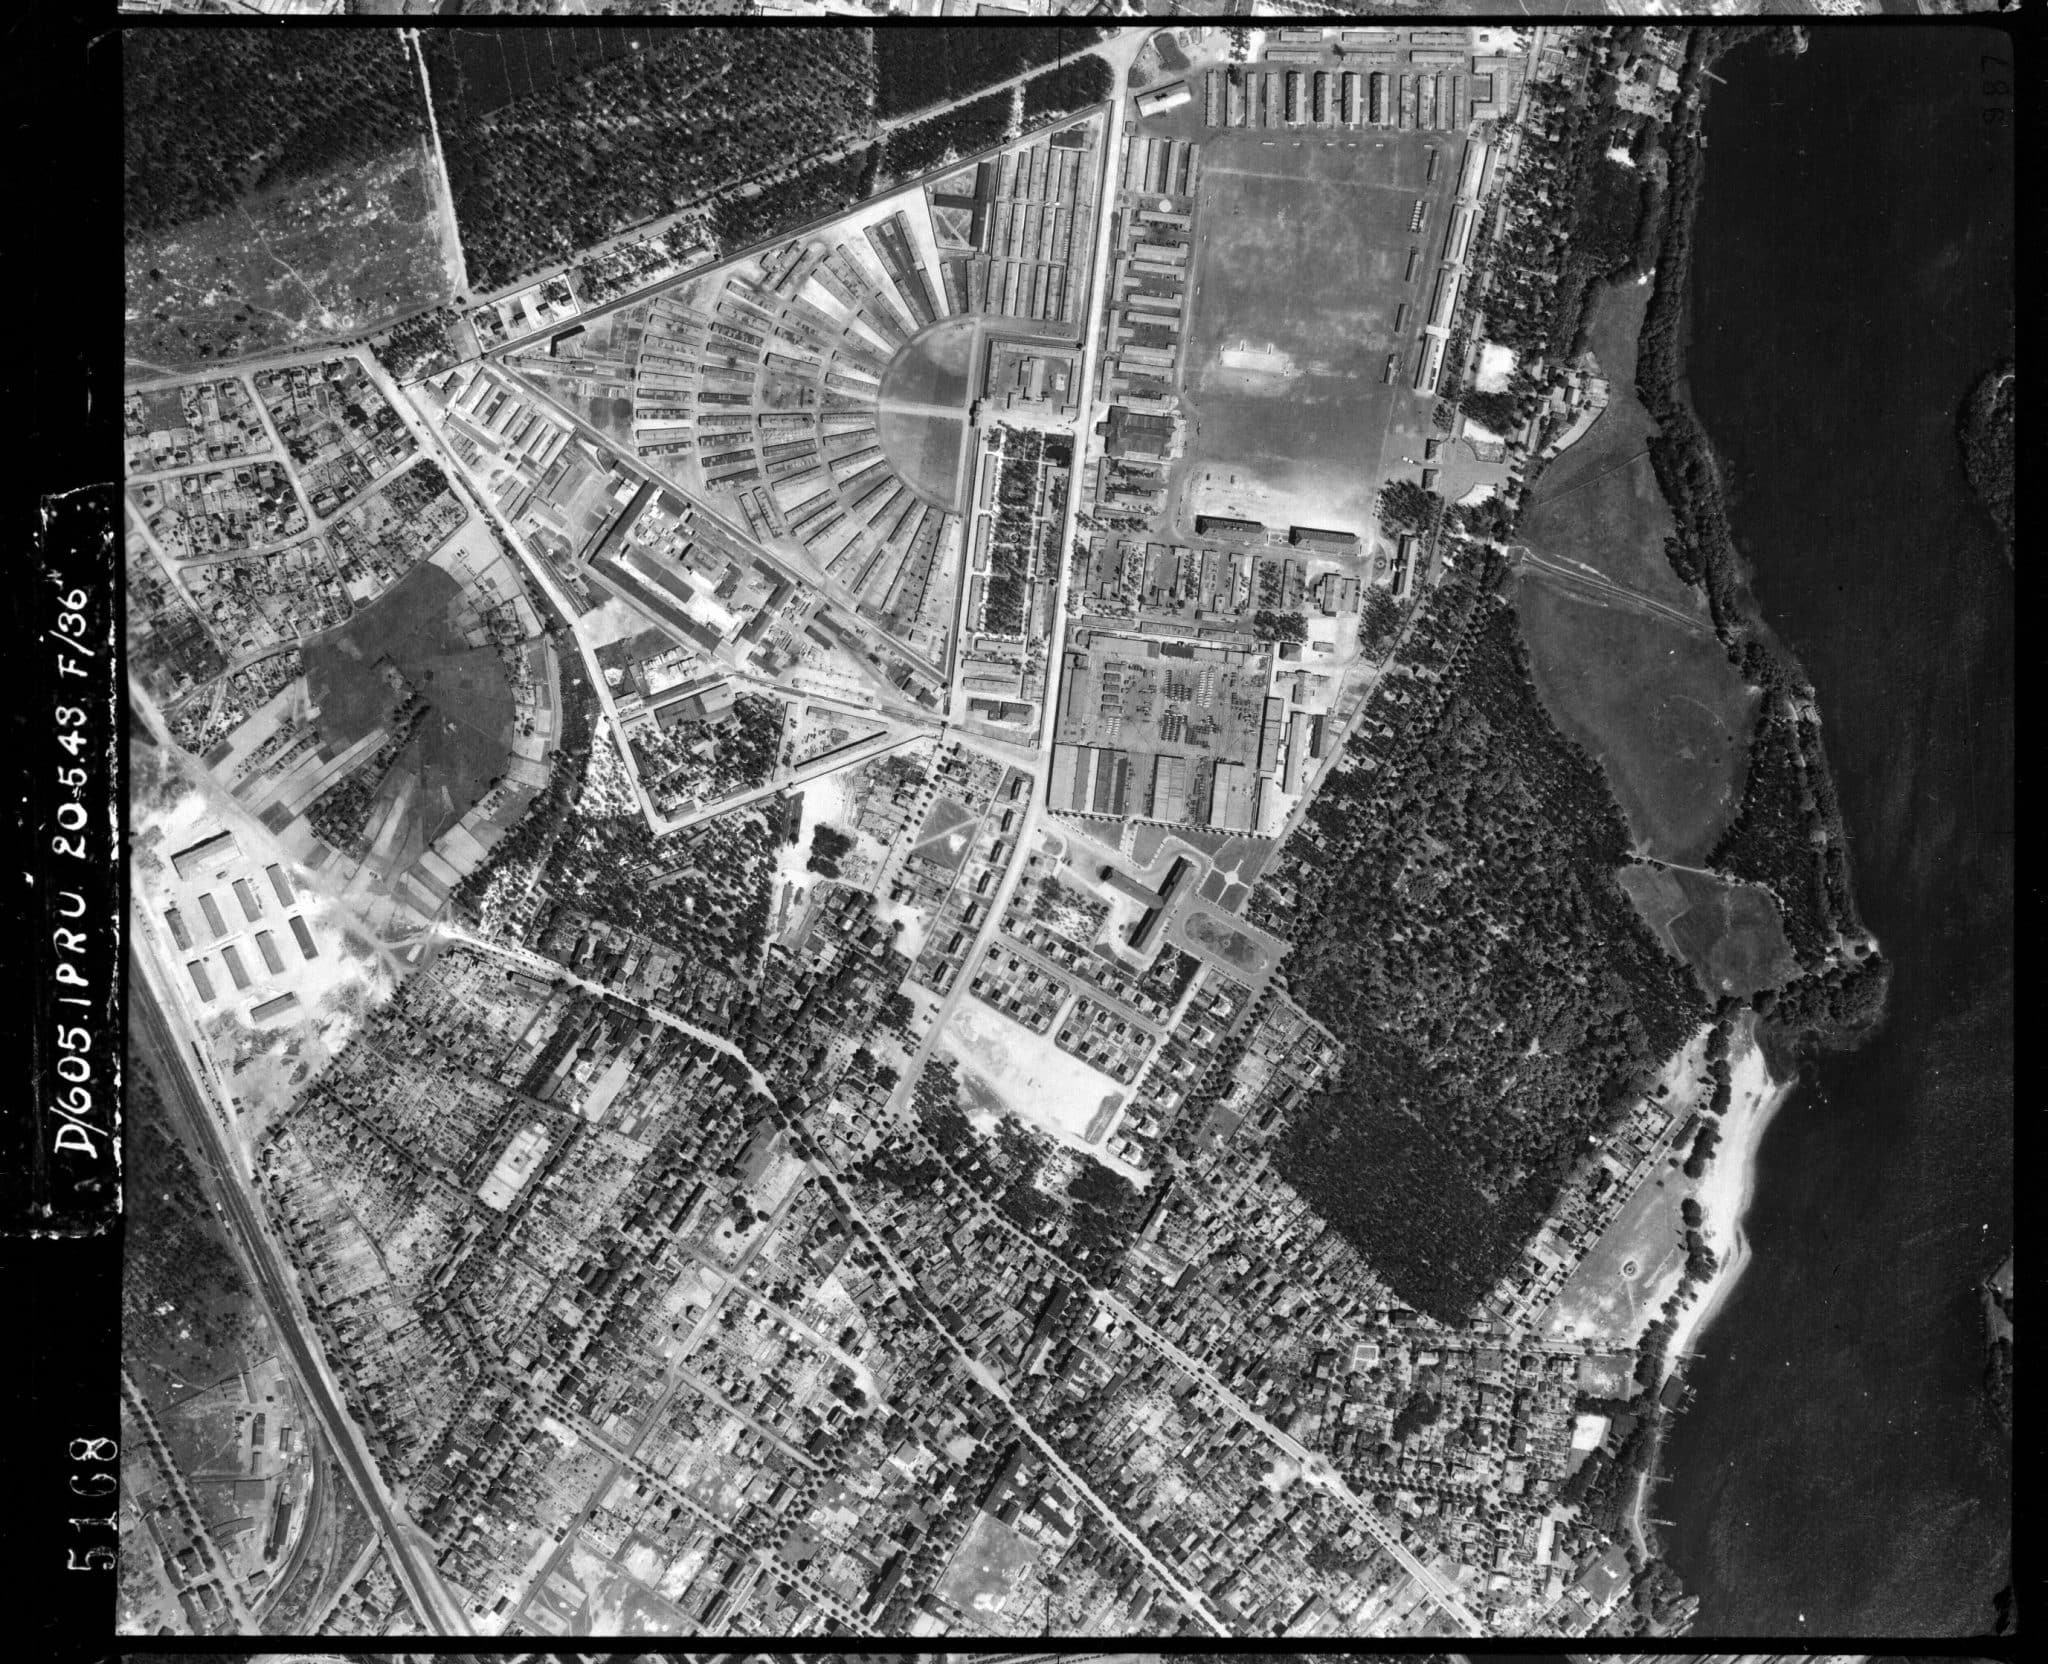 Aerial View of Sachsenhausen Concentration Camp